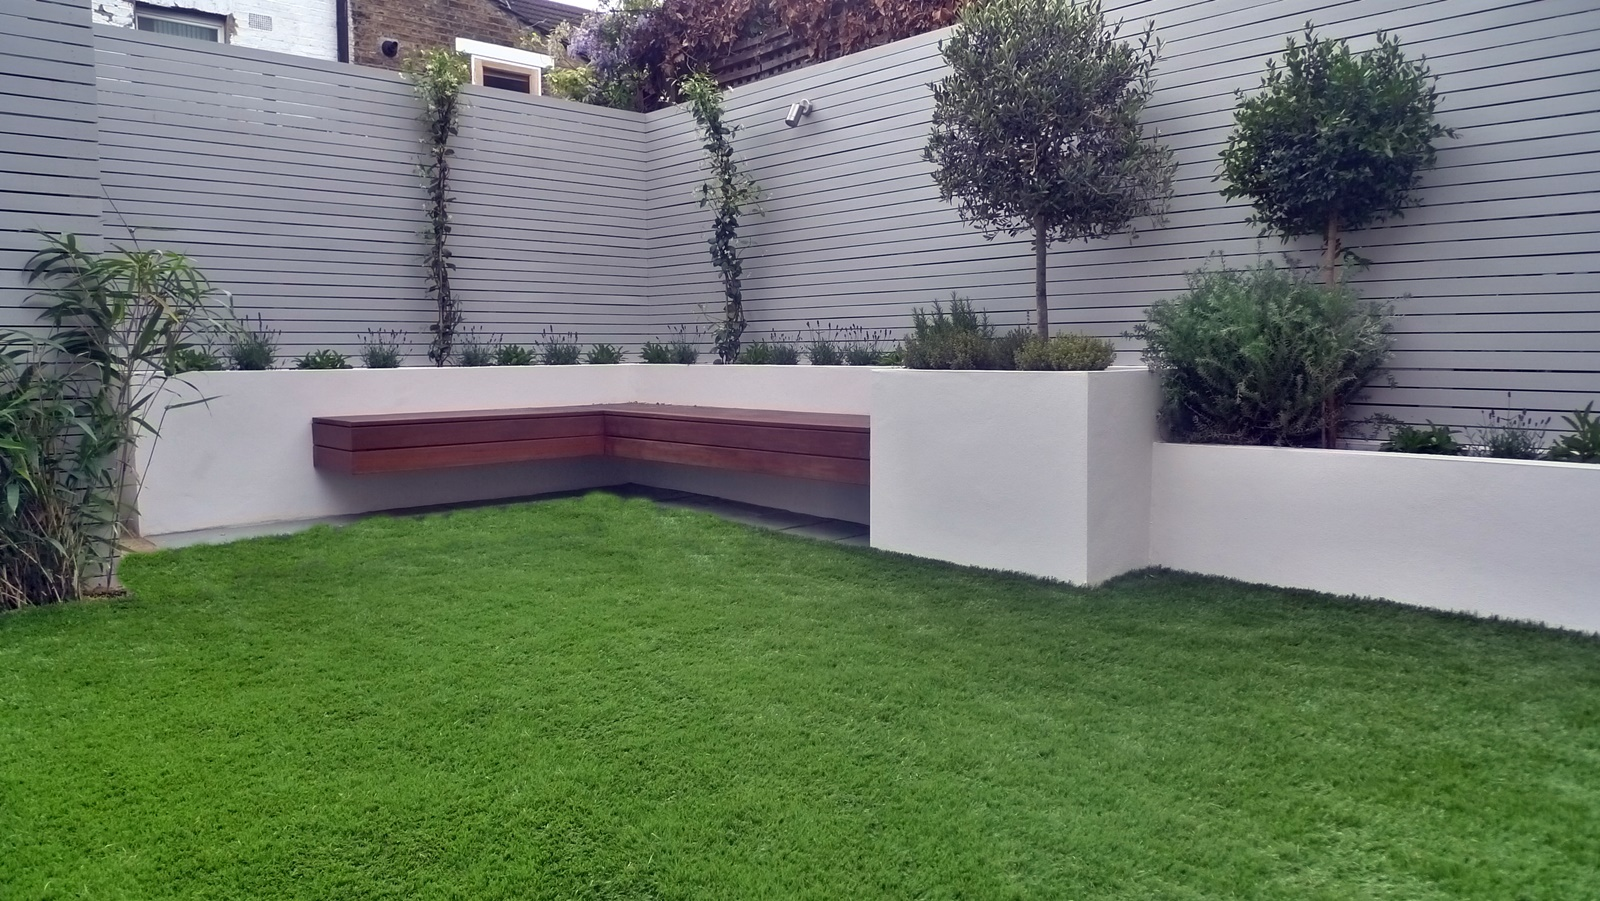 floating hardwood bench slatted hardwood cedar horizontal privacy screen fence raised beds artificial grass dulwich balham peckham forest hill clapham battersea vauxhall london